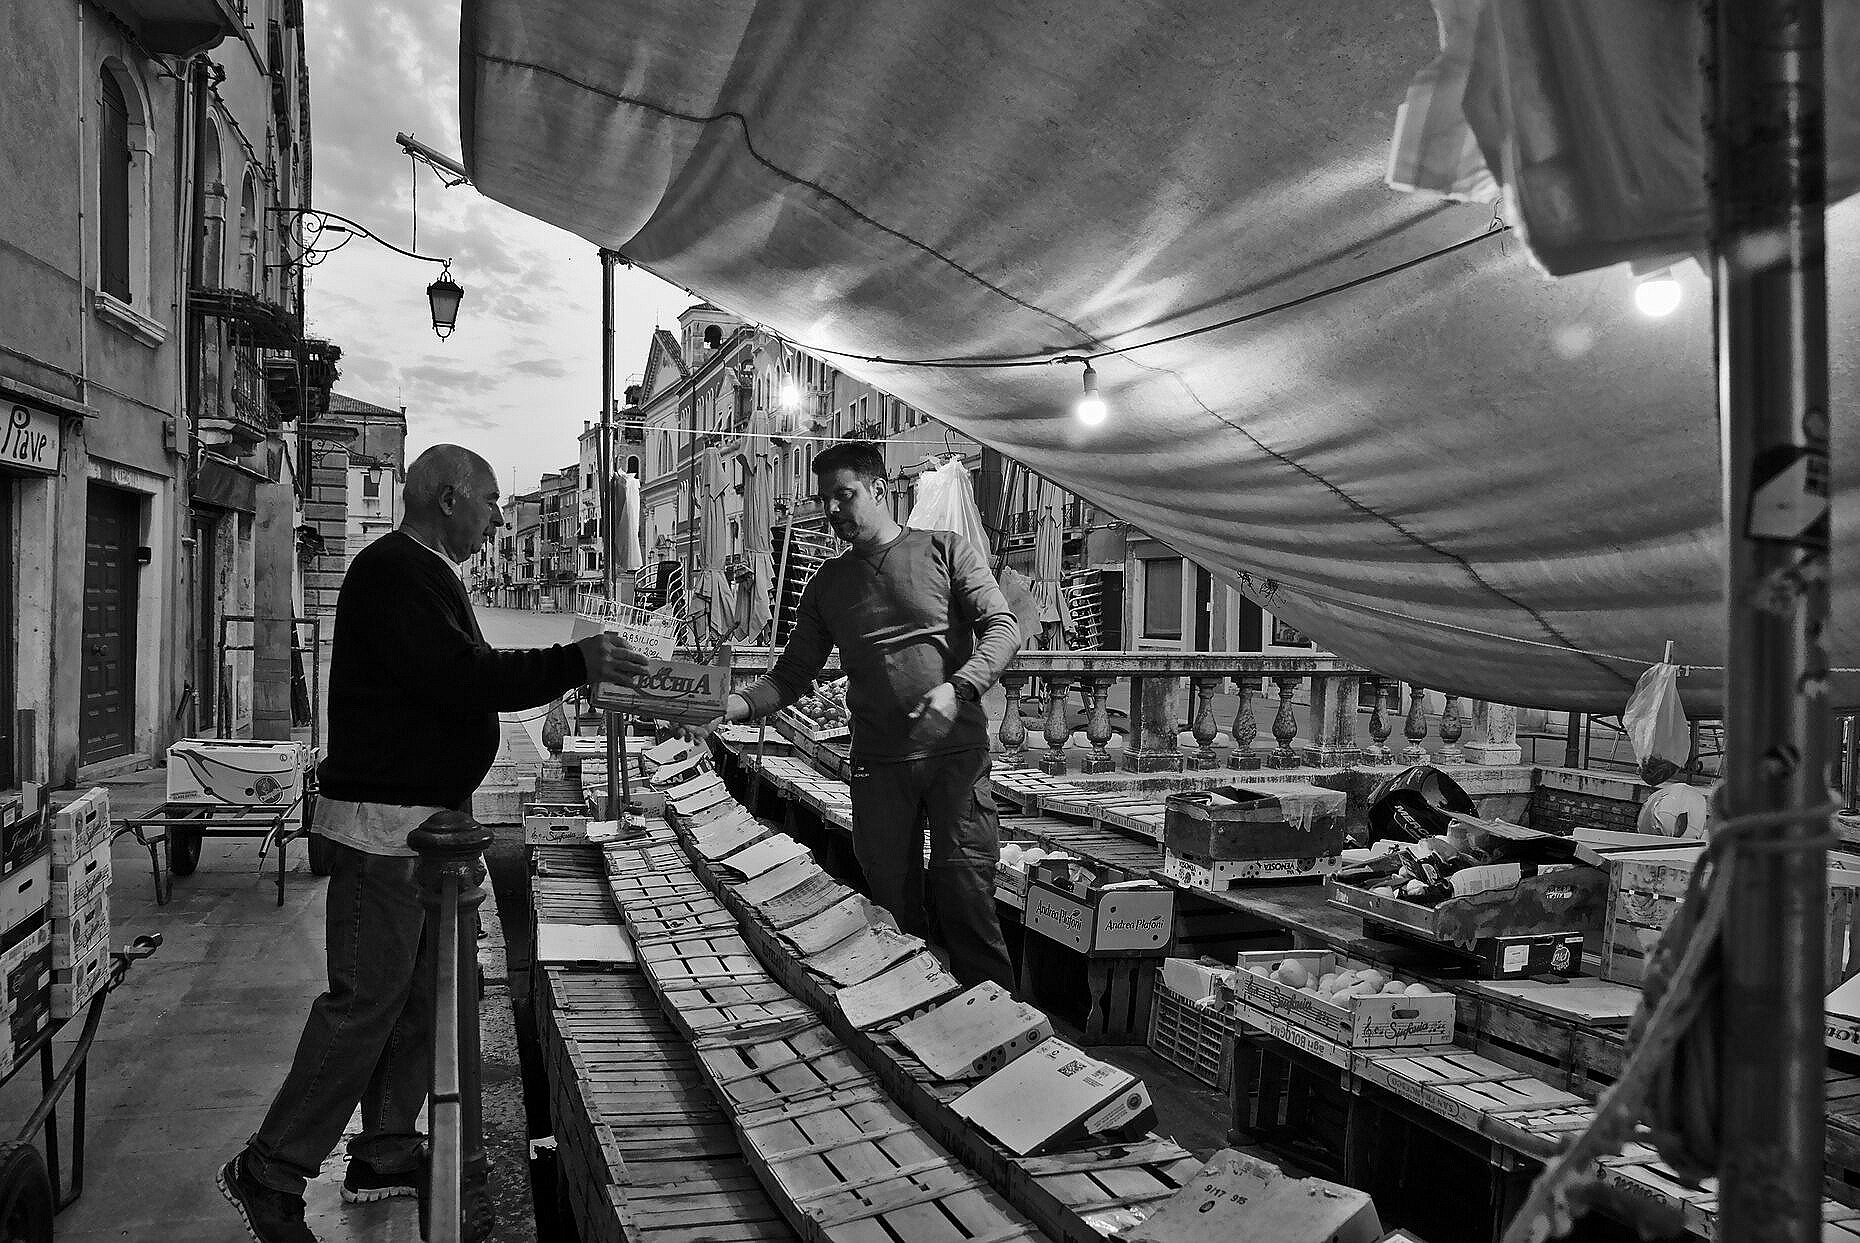 The greengrocers on a boat in Via Garibaldi getting ready in the early morning.